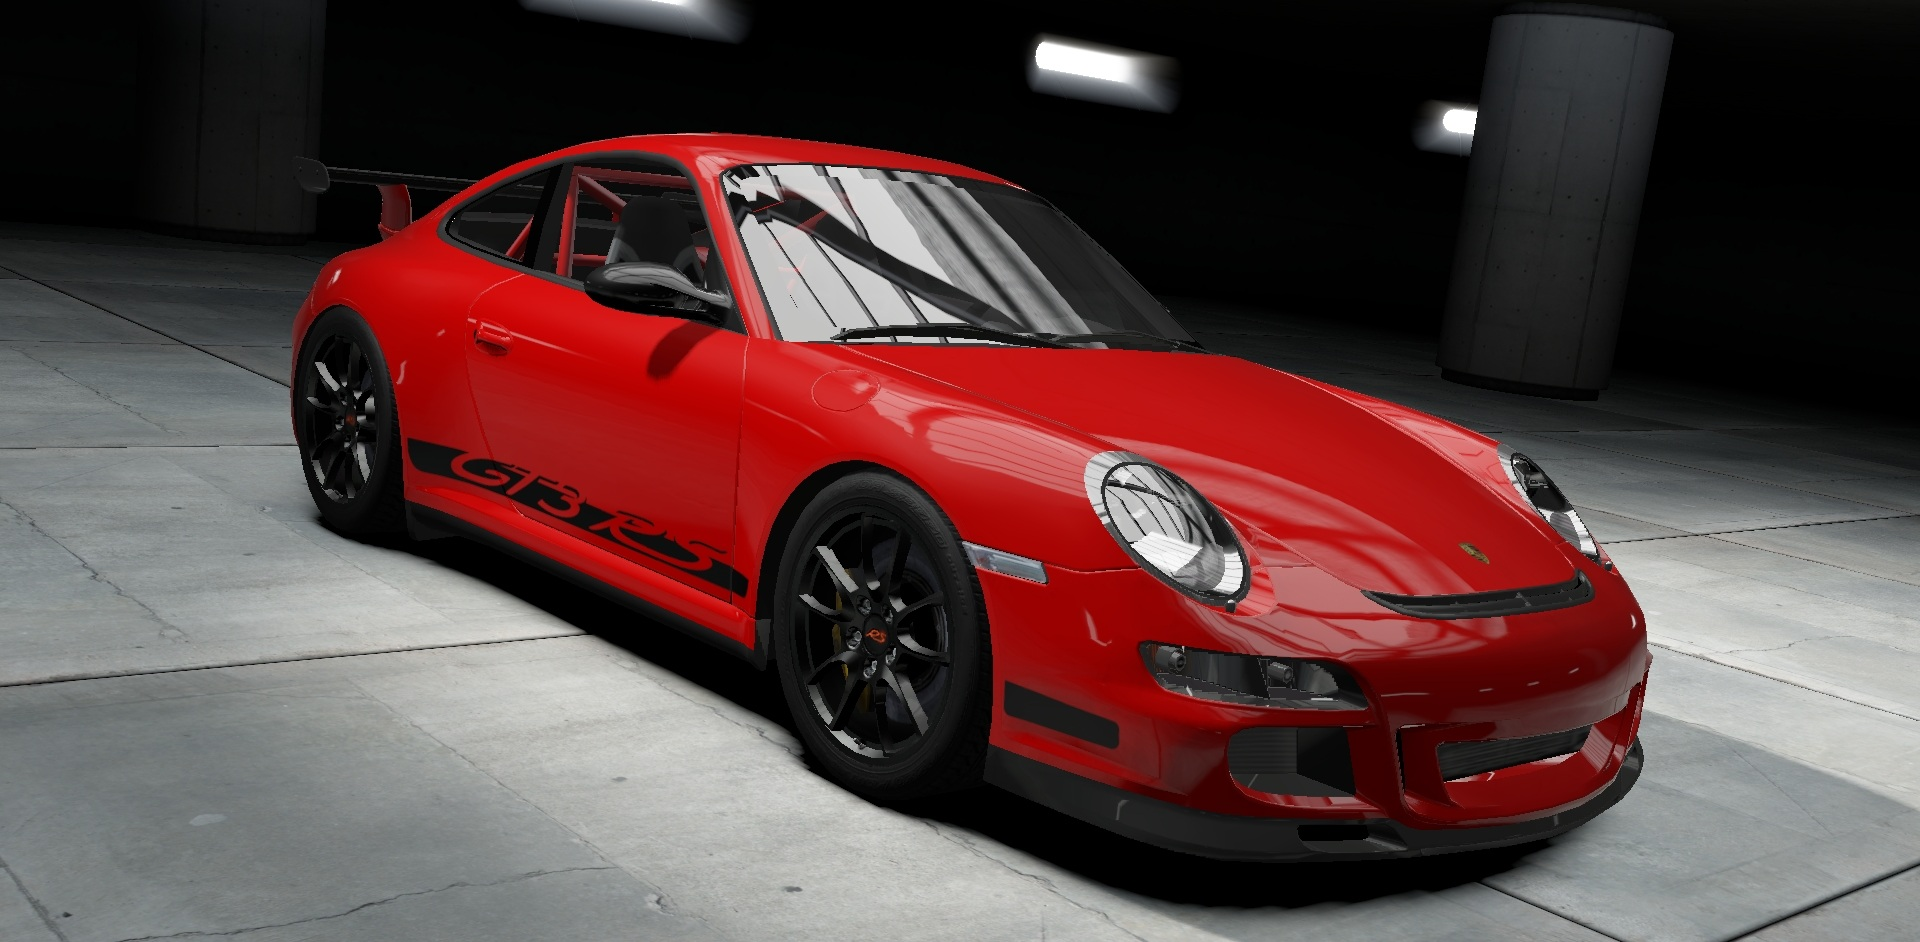 porsche 911 gt3 rs 997 need for speed wiki fandom powered by wikia. Black Bedroom Furniture Sets. Home Design Ideas